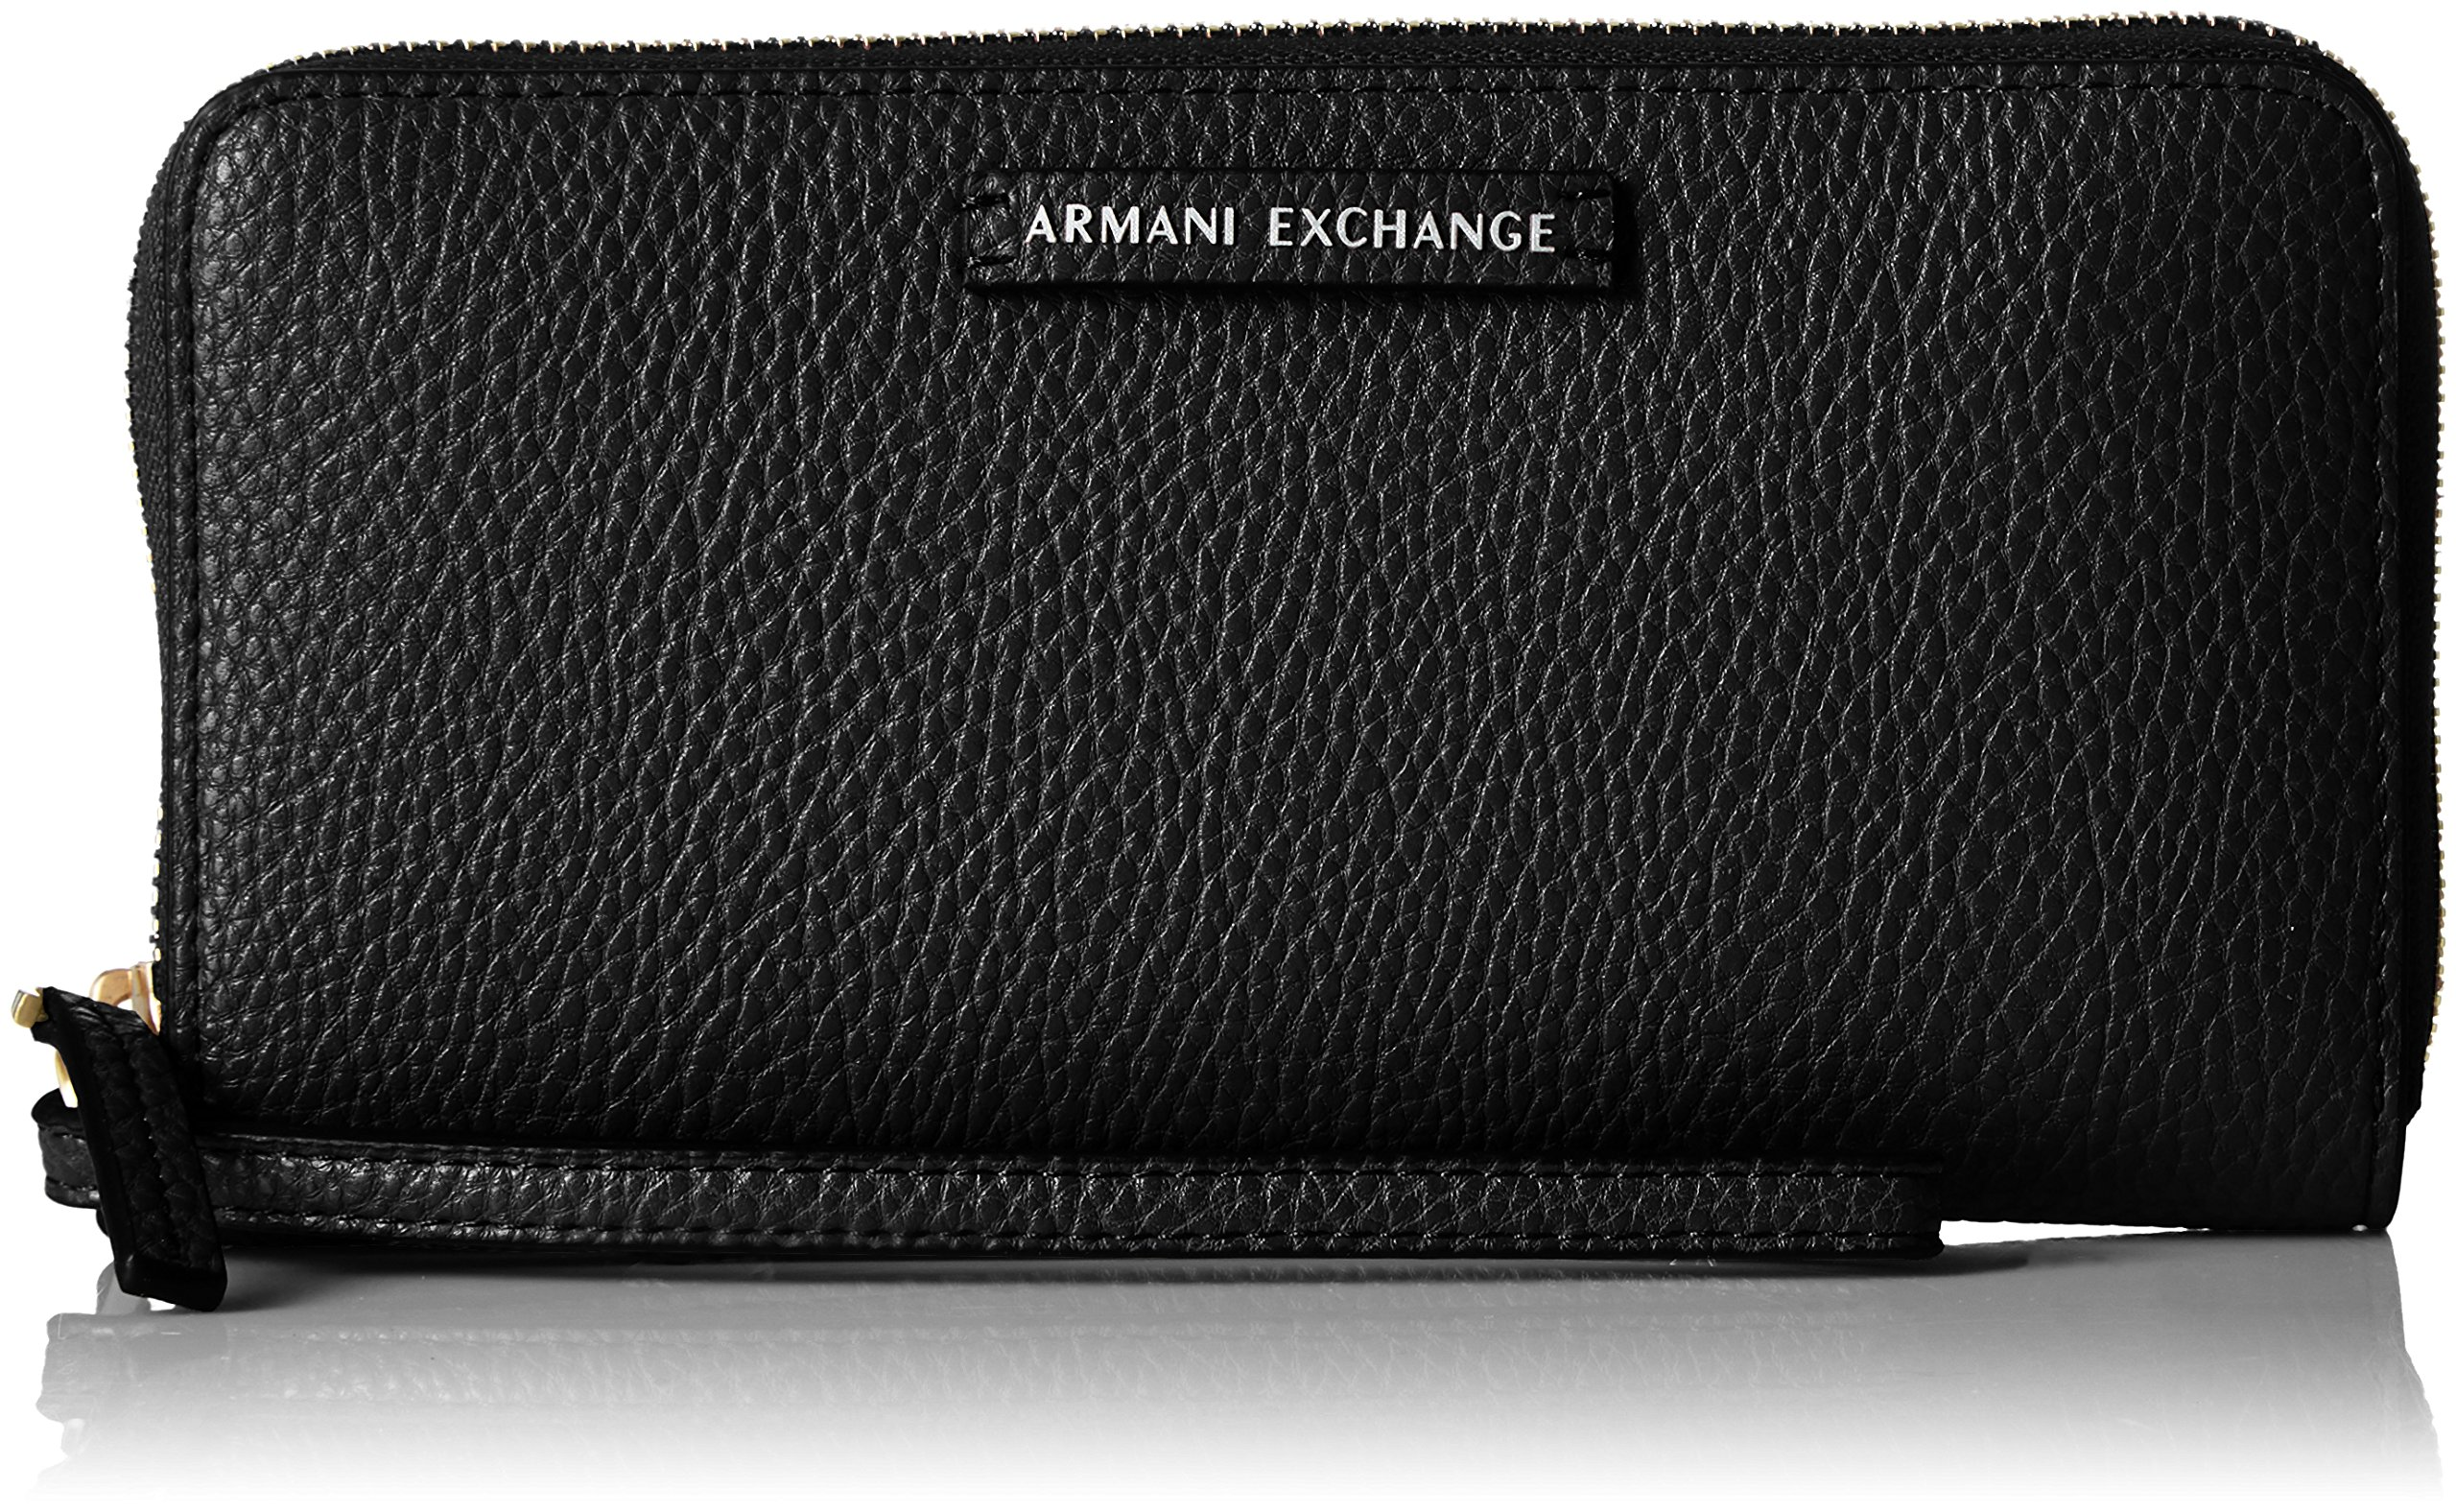 A|X Armani Exchange Wristlet, Black, One Size